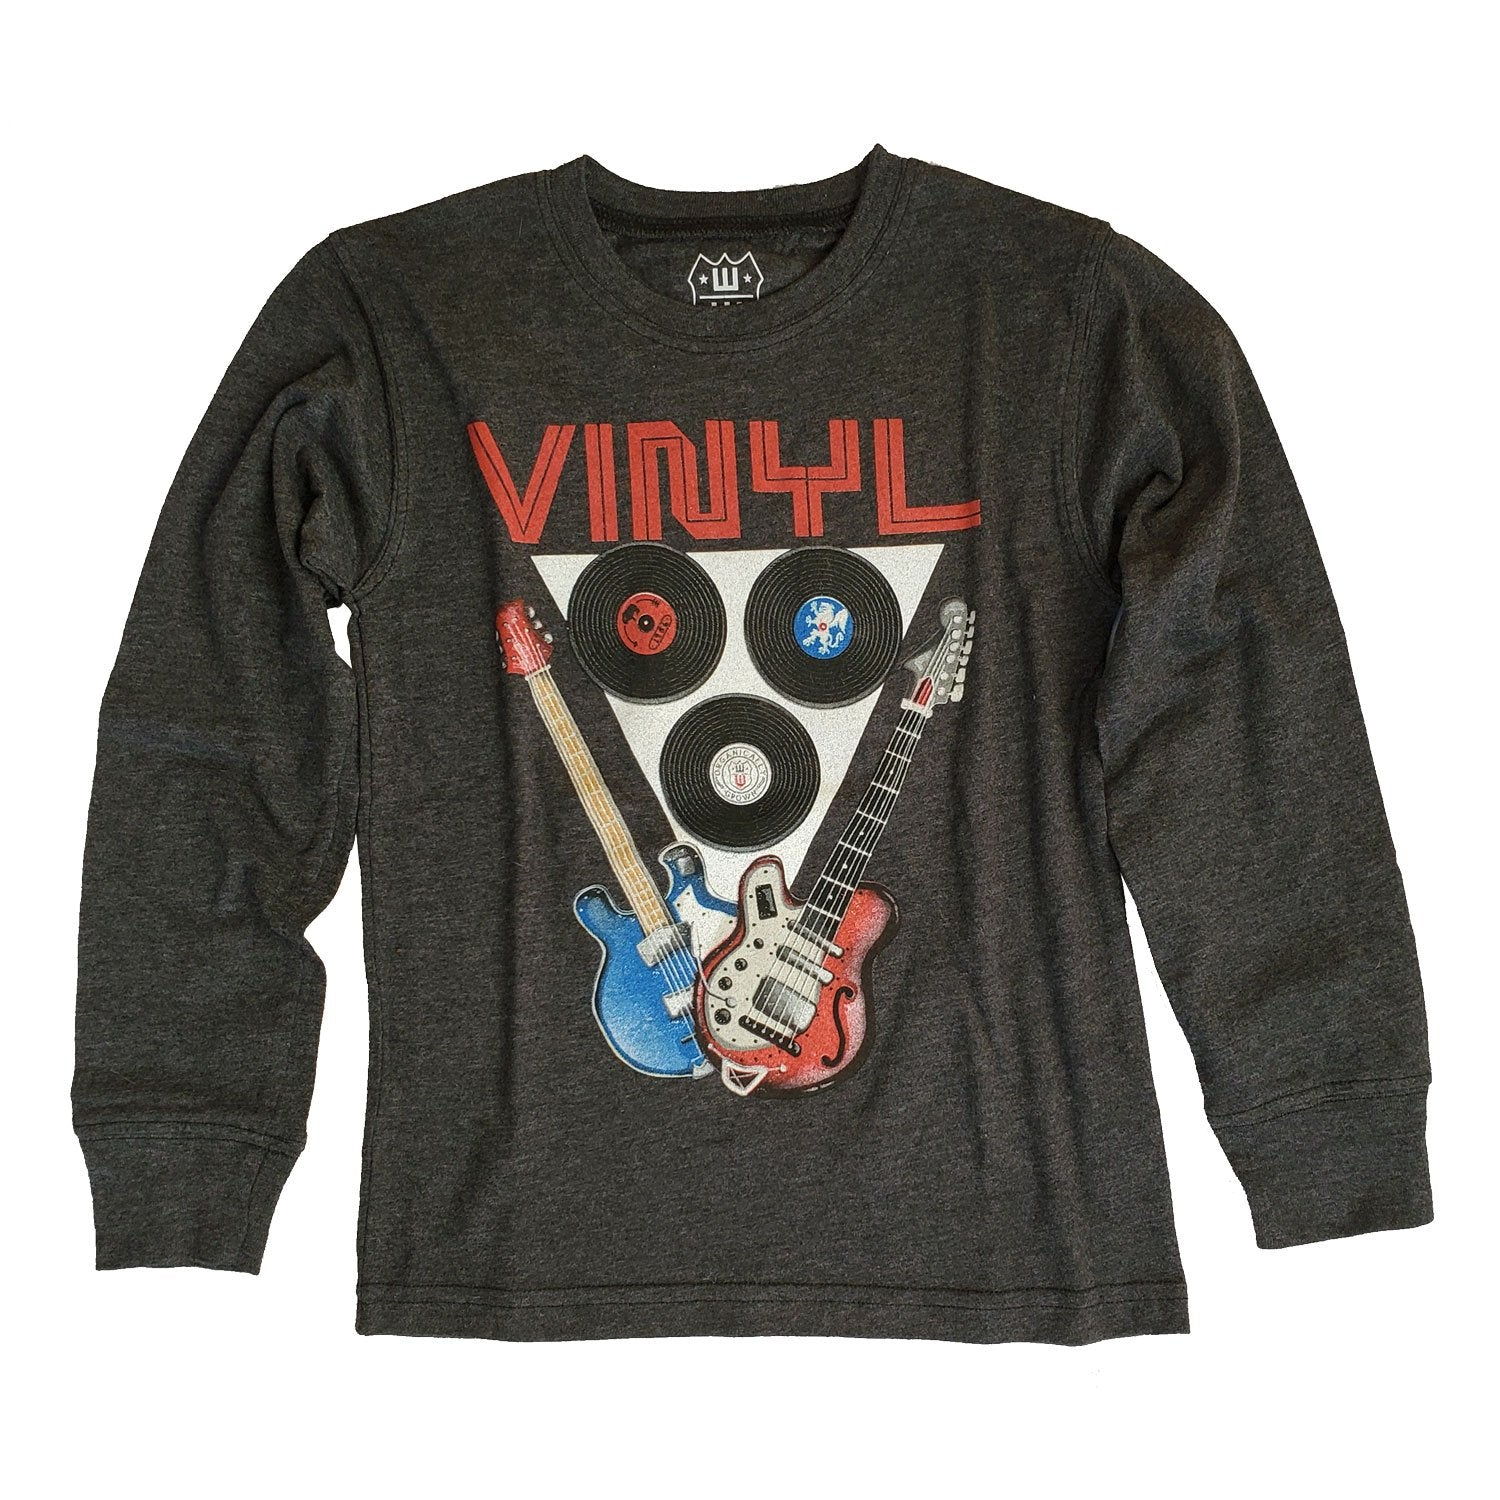 Boys' Vinyl Shirt by Wes and Willy